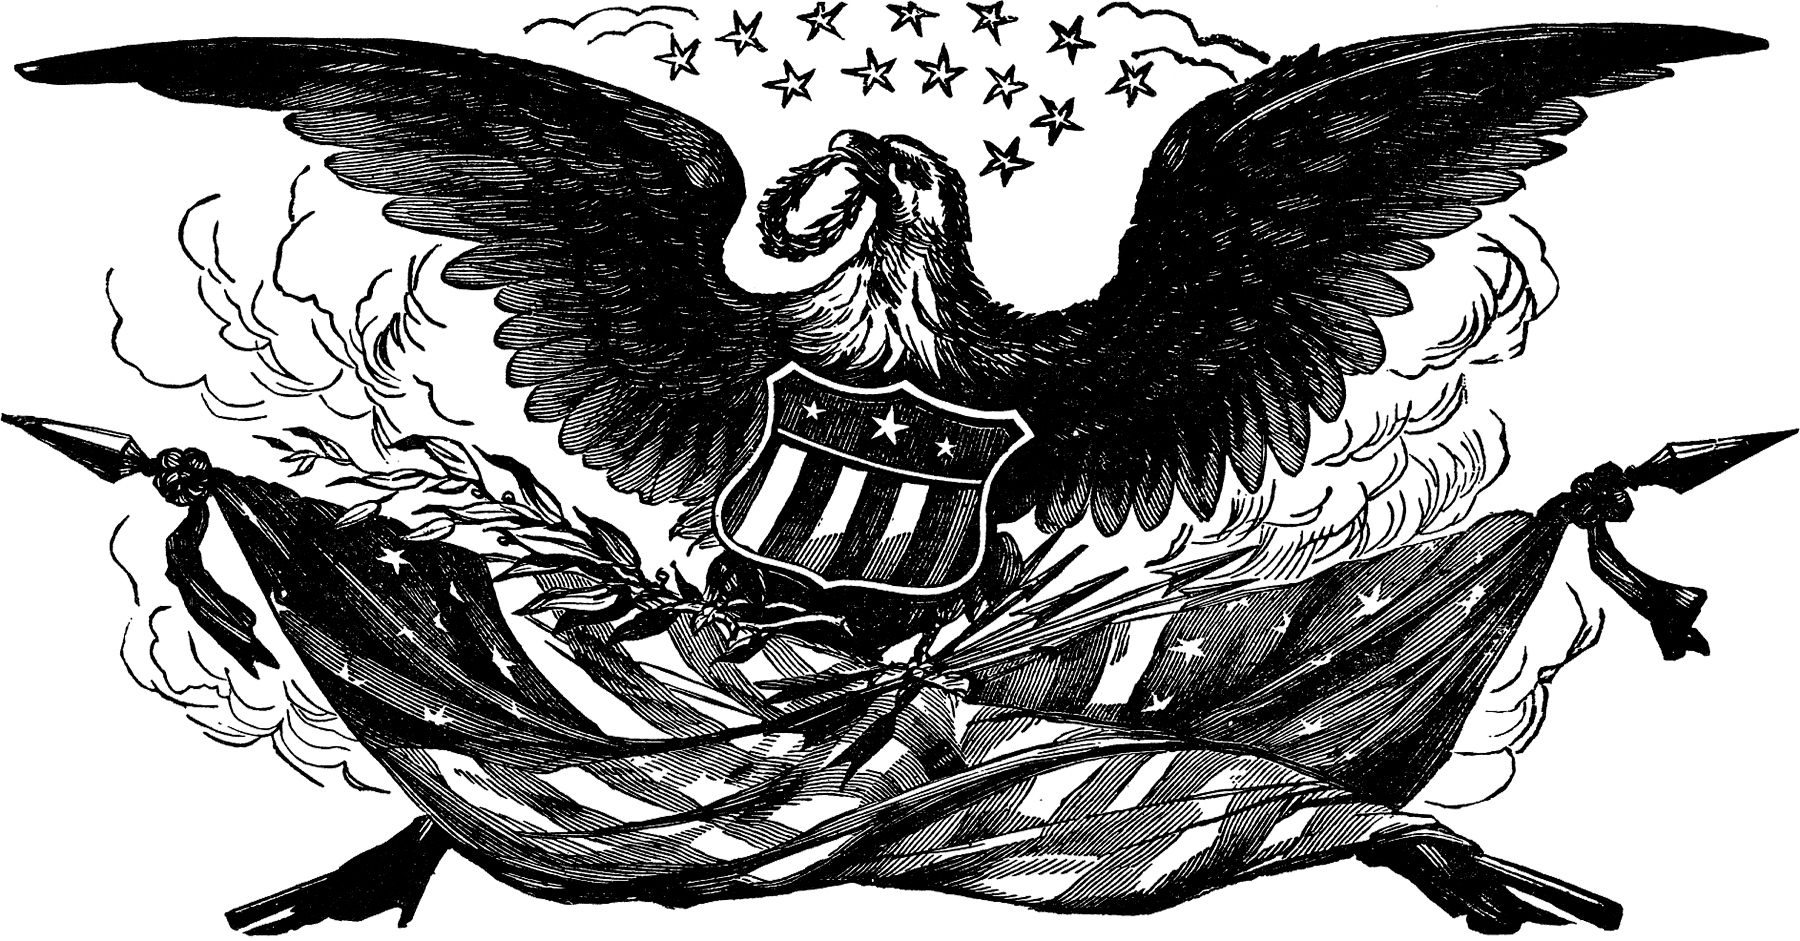 Black Eagle clipart patriotic The Graphics with Image! Image